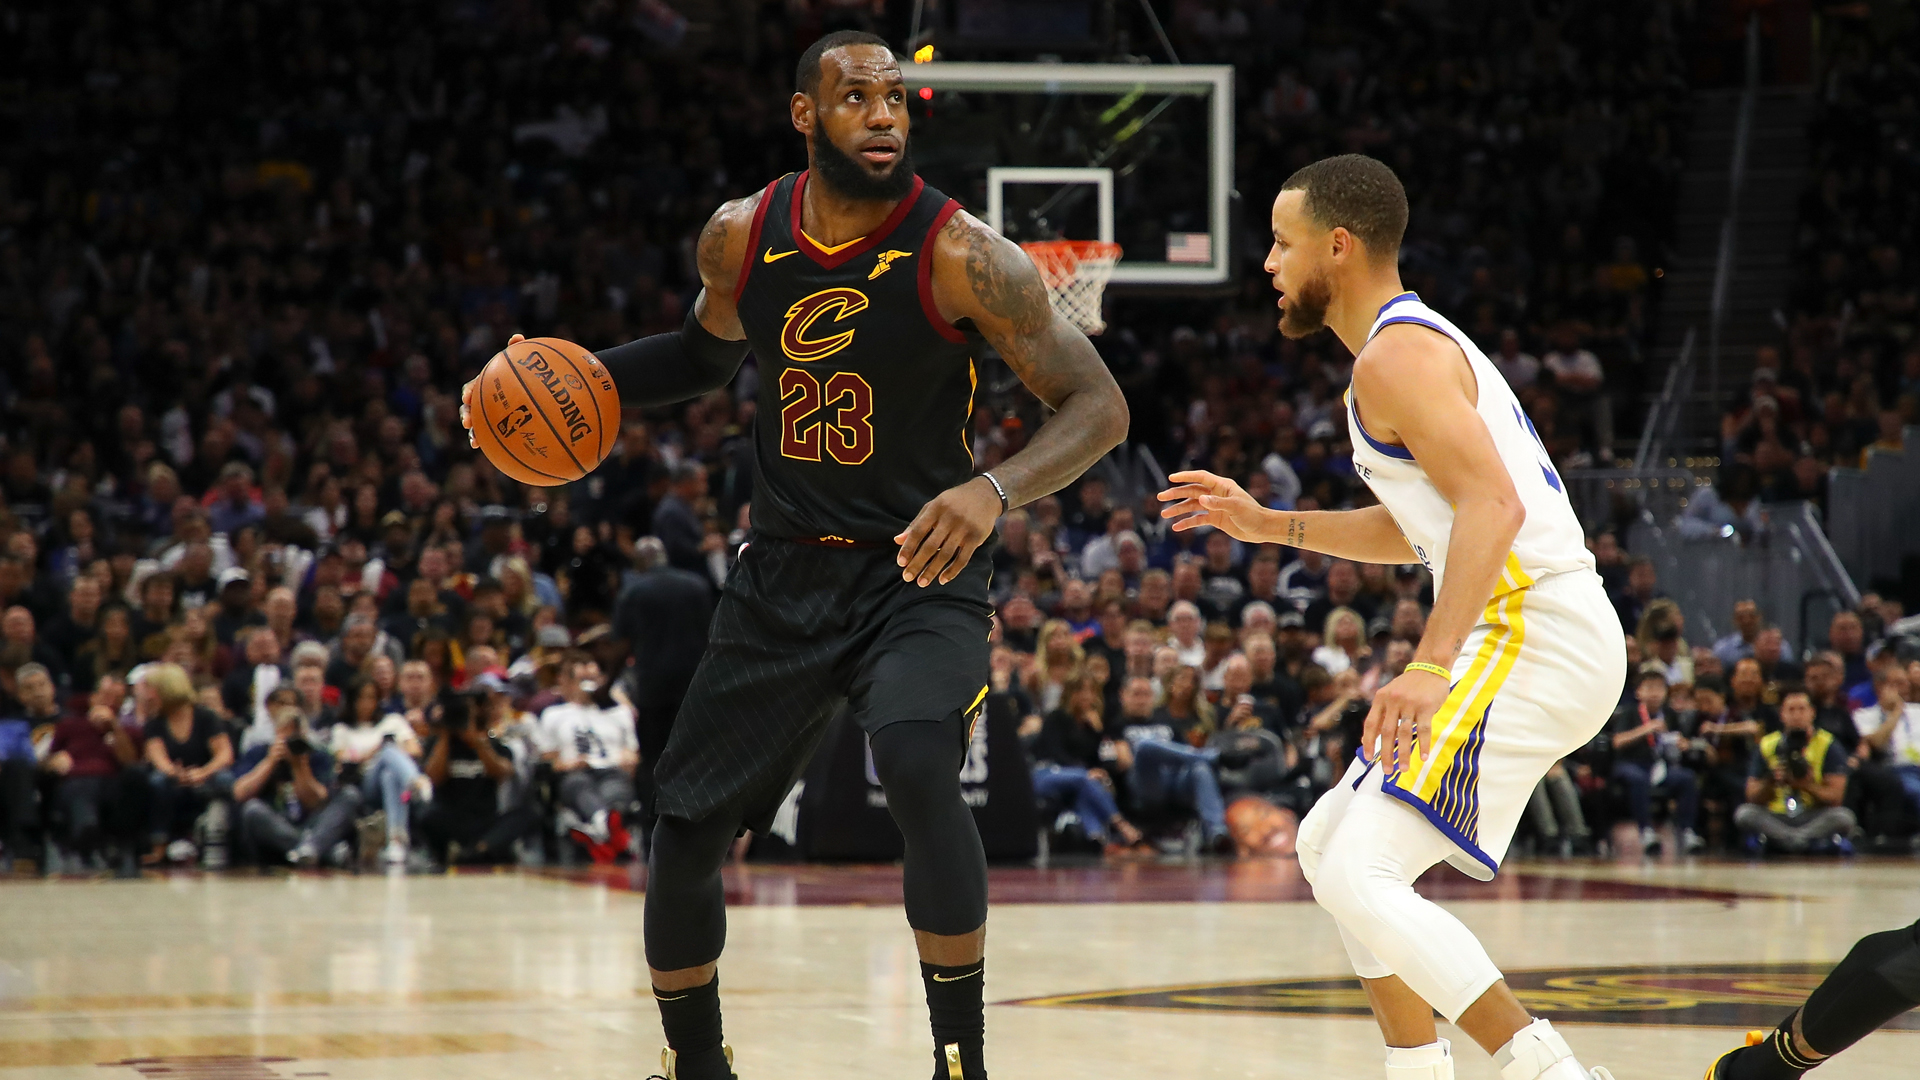 LeBron James #23 of the Cleveland Cavaliers drives to the basket defended by Stephen Curry #30 of the Golden State Warriors during Game Four of the 2018 NBA Finals at Quicken Loans Arena on June 8, 2018 in Cleveland. (Credit: Gregory Shamus/Getty Images)